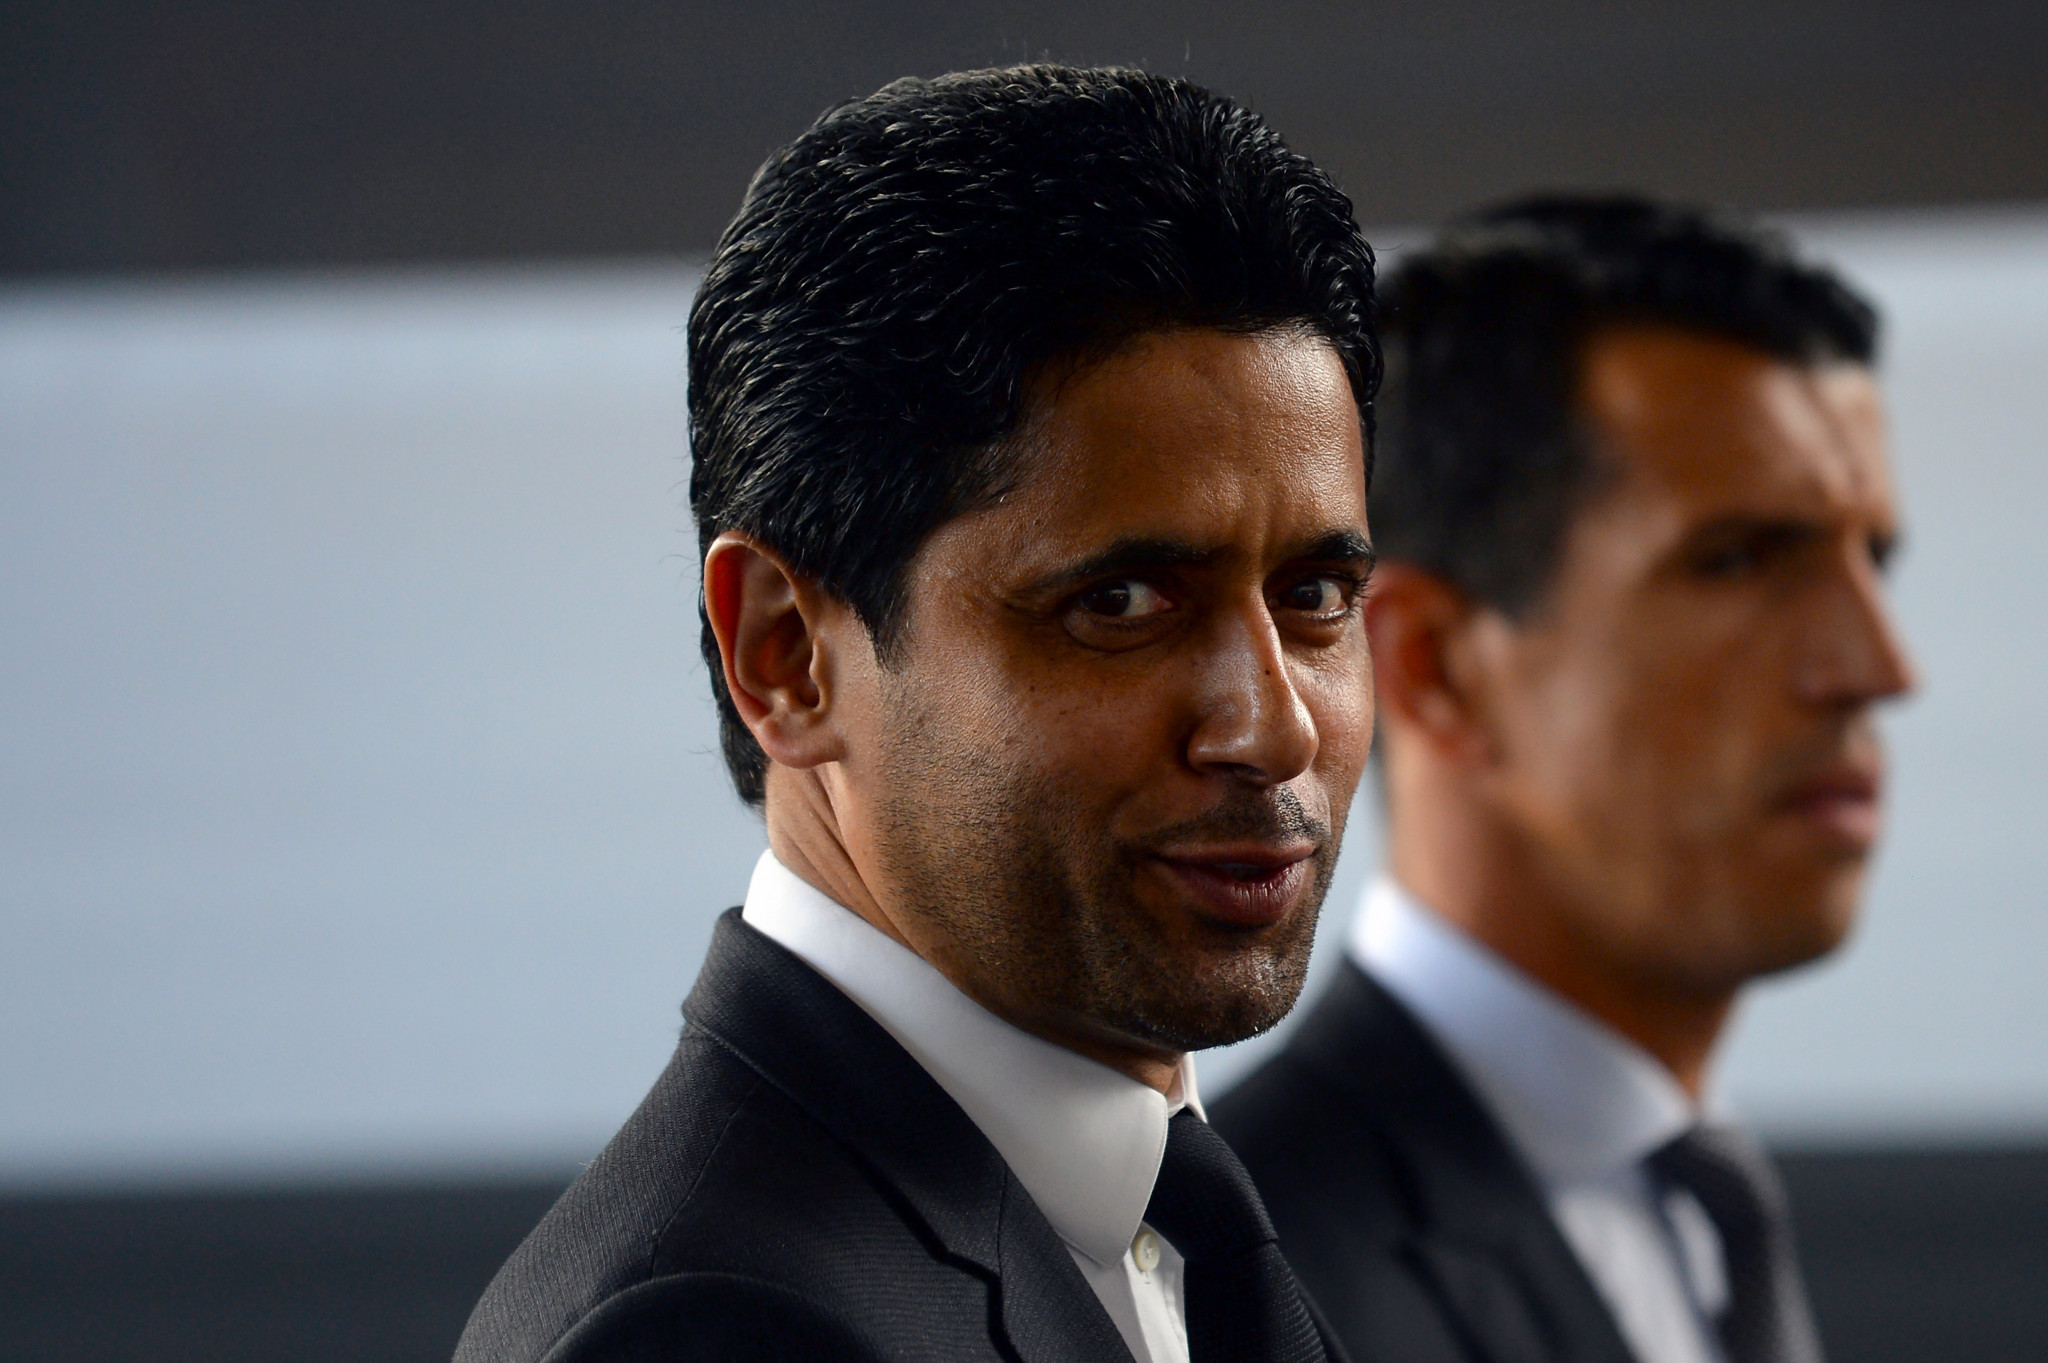 Al-Khelaifi and Valcke indicted on criminal charges by Swiss Attorney General